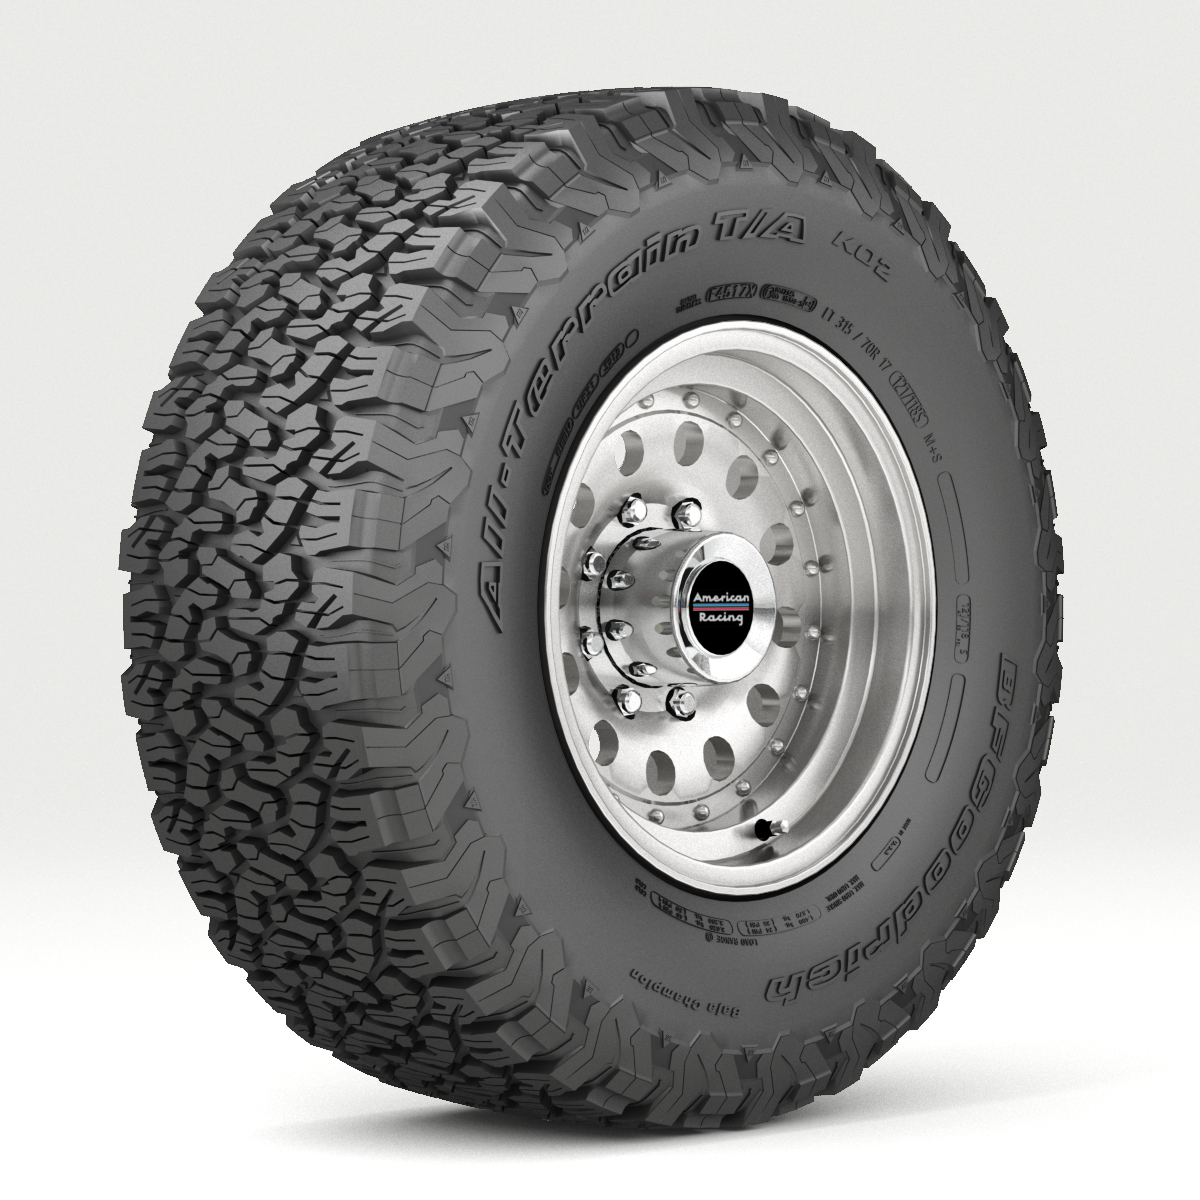 off road wheel and tire 5 3d model buy off road wheel and tire 5 3d model flatpyramid. Black Bedroom Furniture Sets. Home Design Ideas